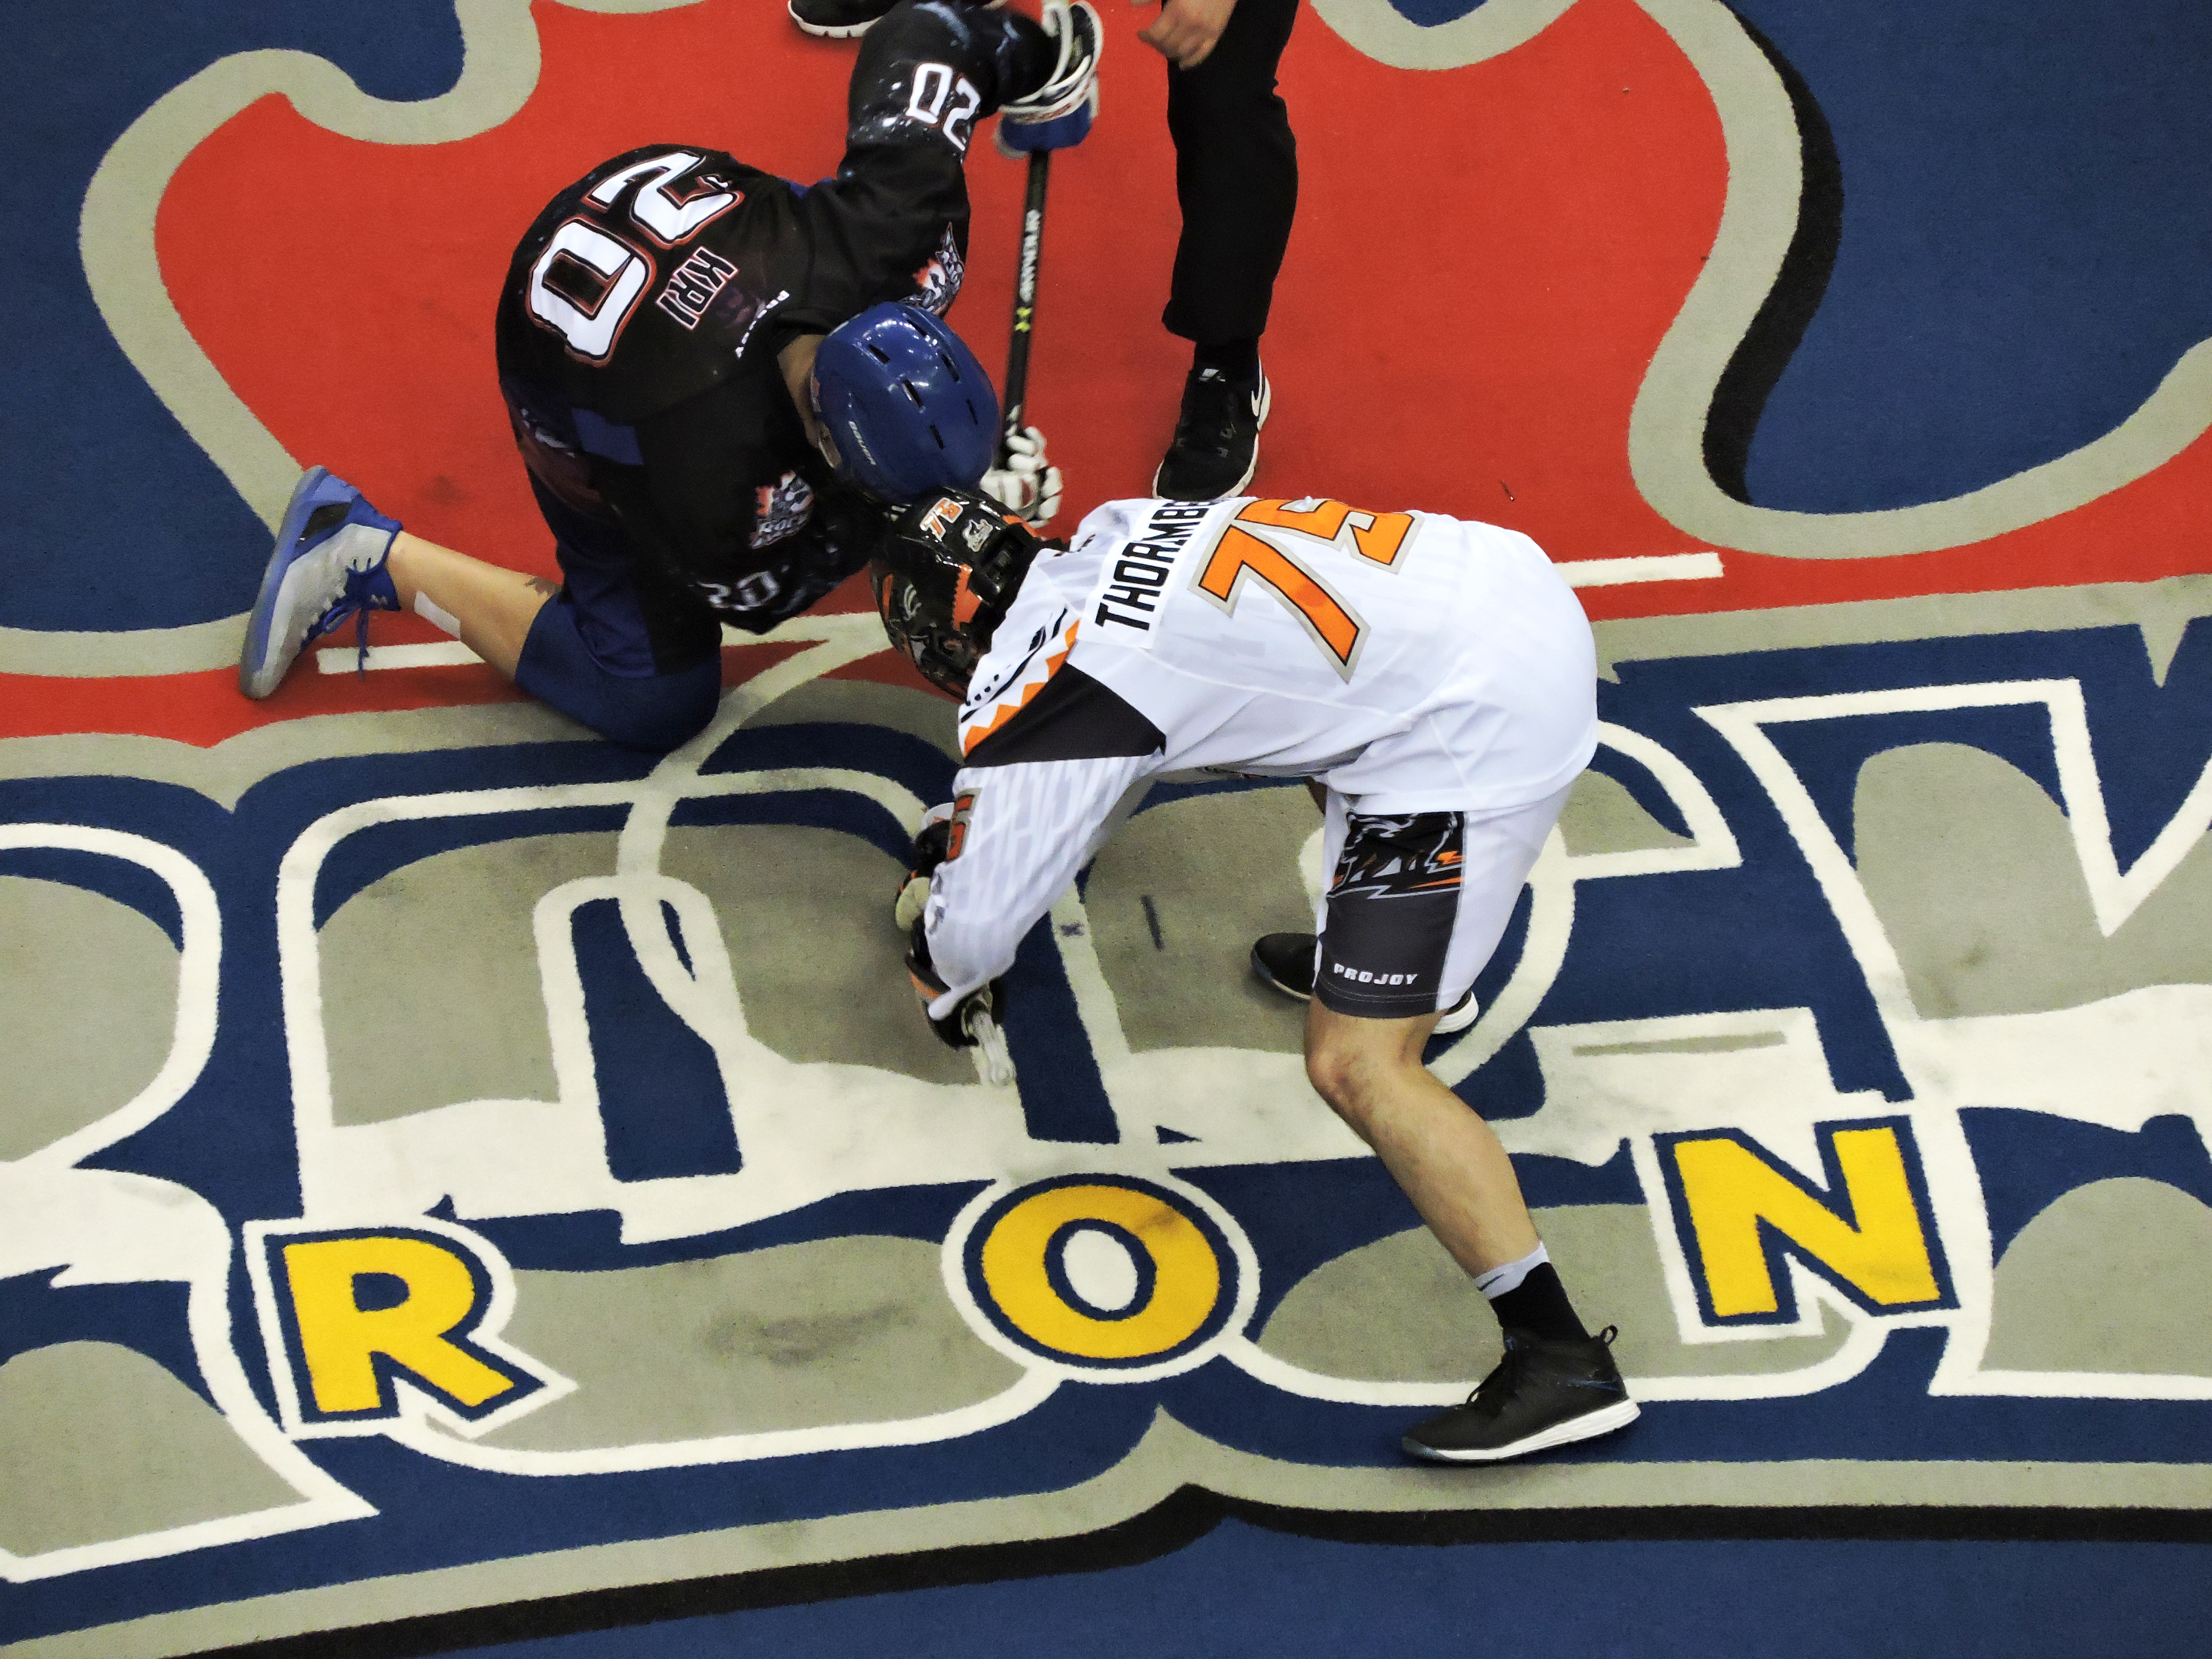 Jay Thorimbert of the New England Black Wolves faces off against Bradley Kri of the Toronto Rock on March 3, 2017 at the Air Canada Centre. (Photo: Anna Taylor)